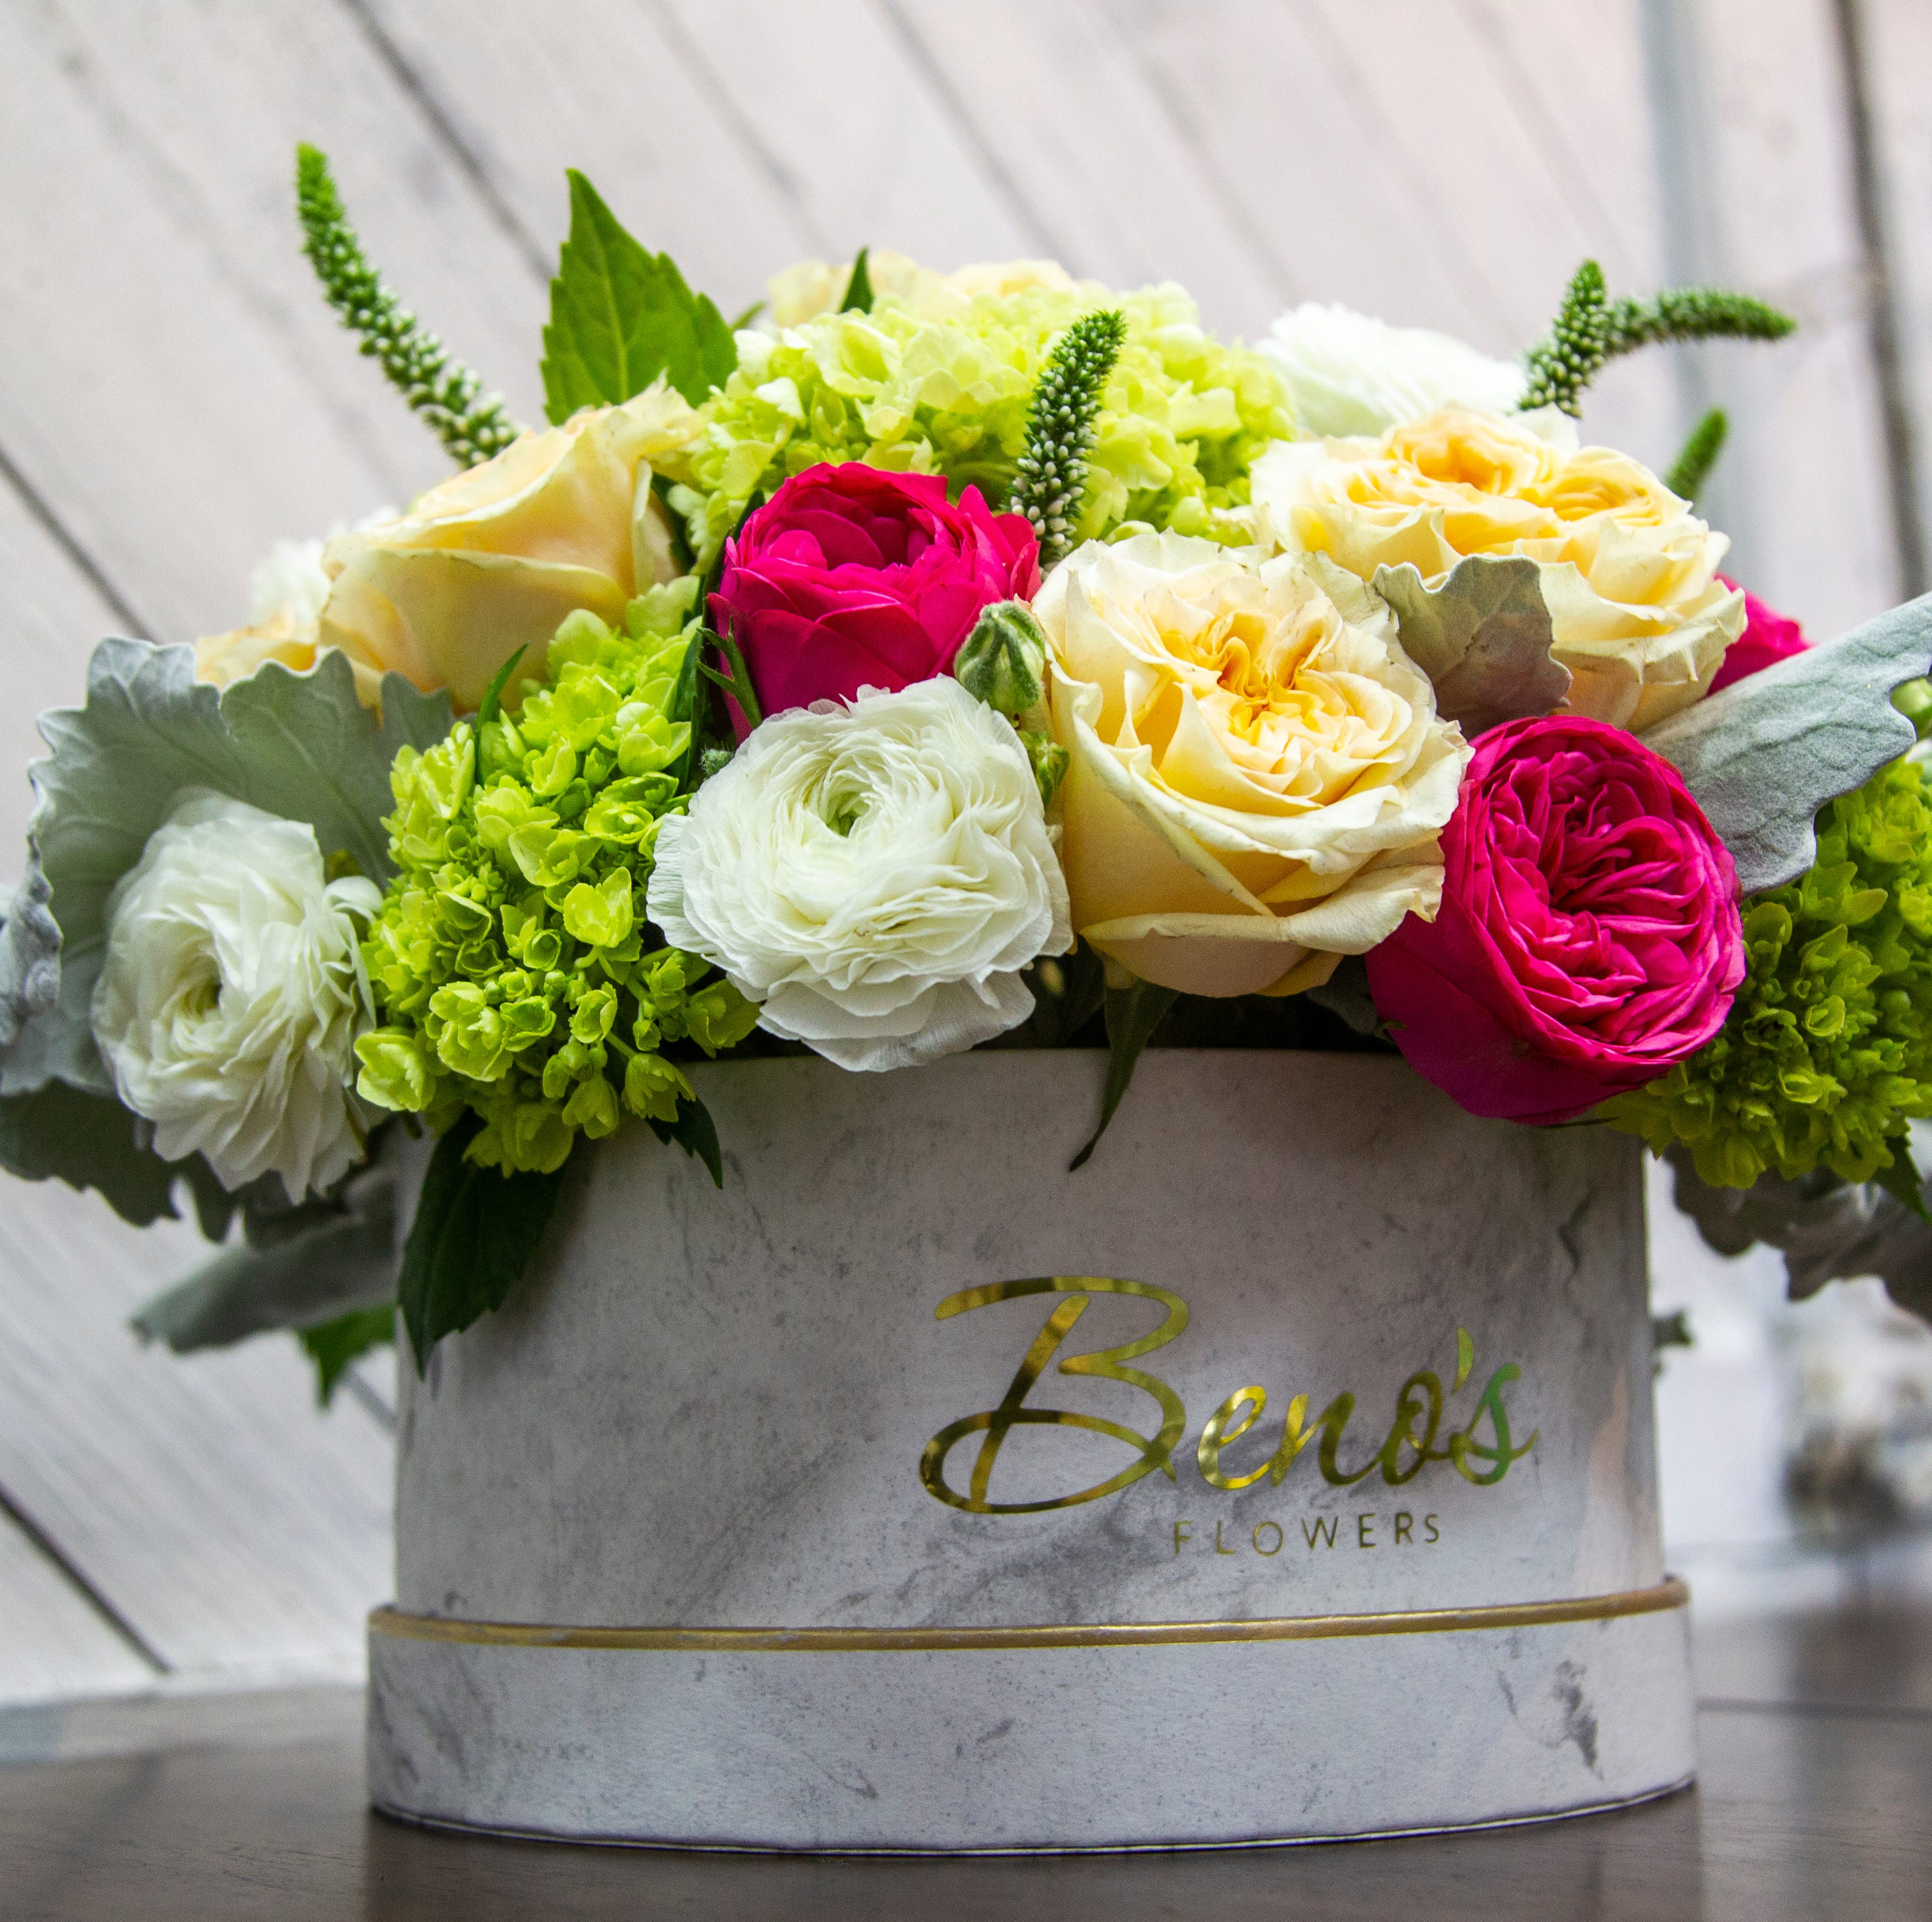 Beno's Flowers brings more blossoms & wedding arrangements to downtown Iowa City